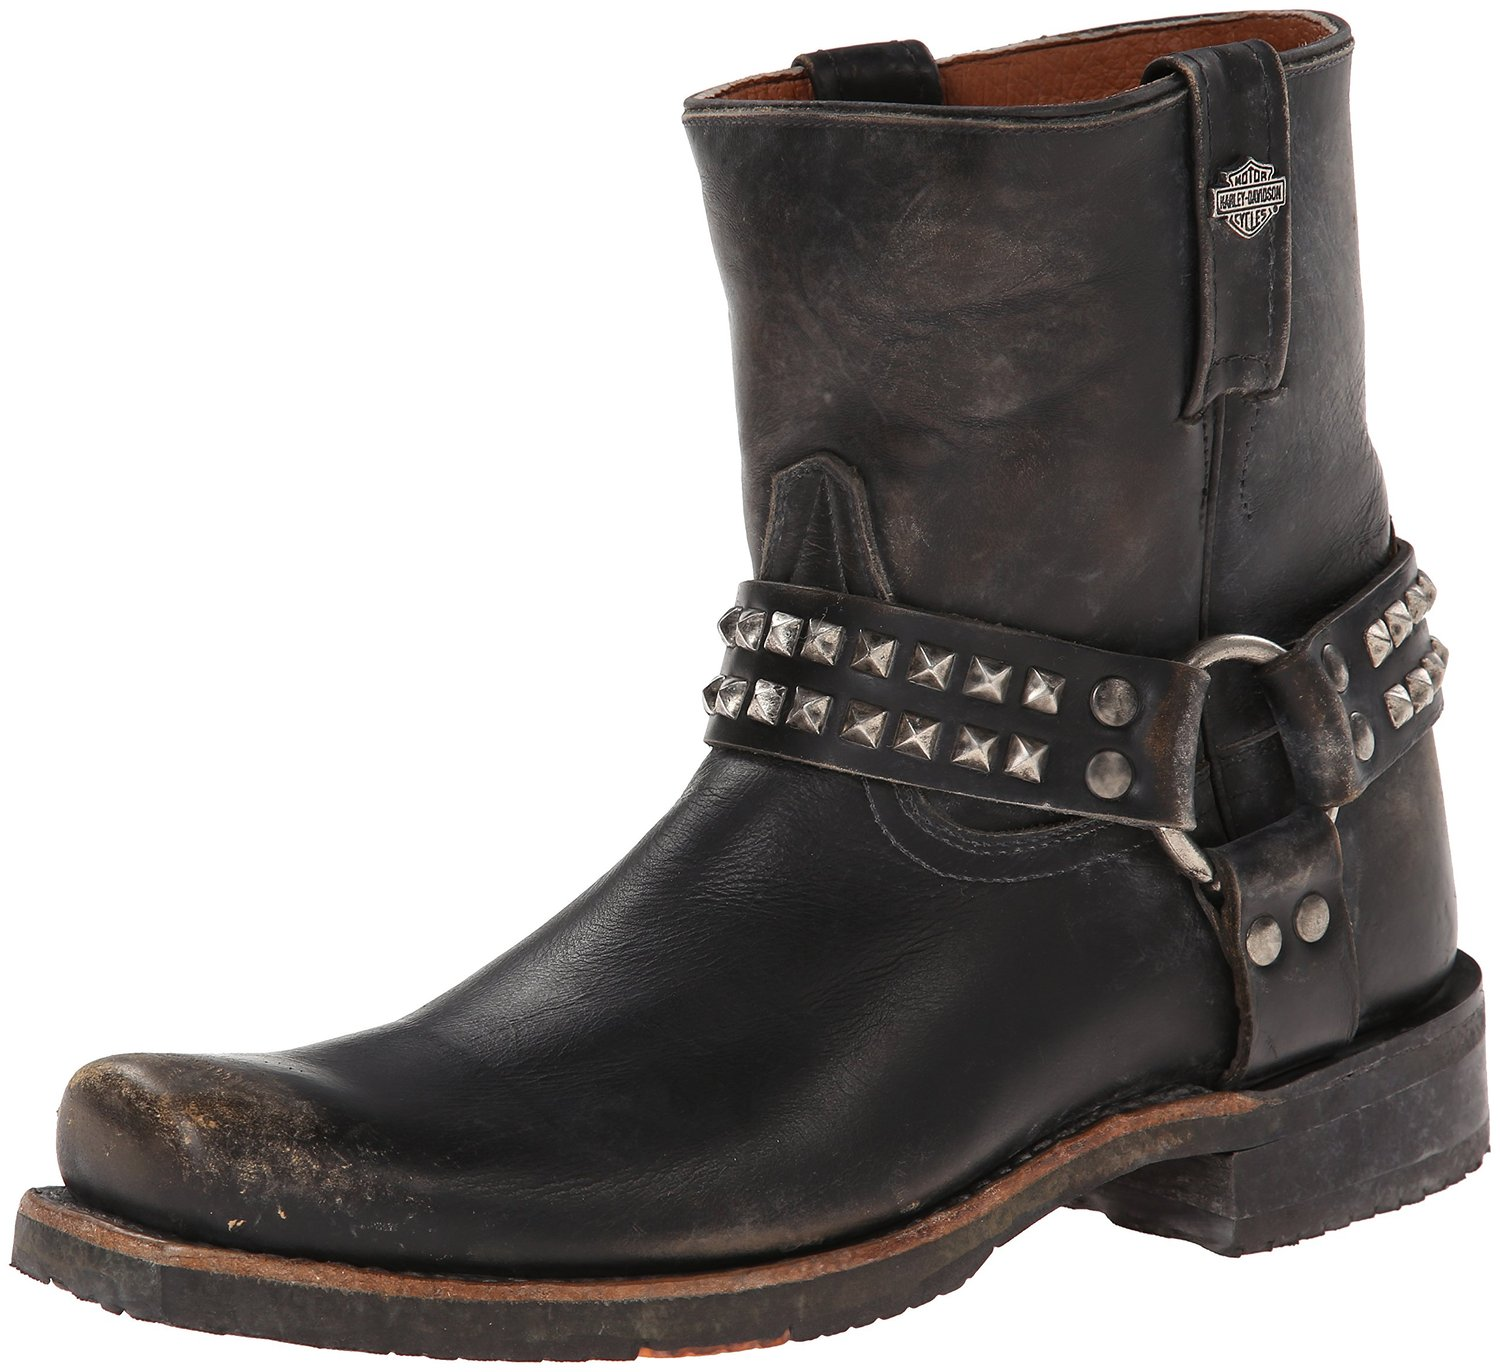 d82e09bf9cc Amazon.com: Harley-Davidson Women's Katerina Work Boot: Shoes